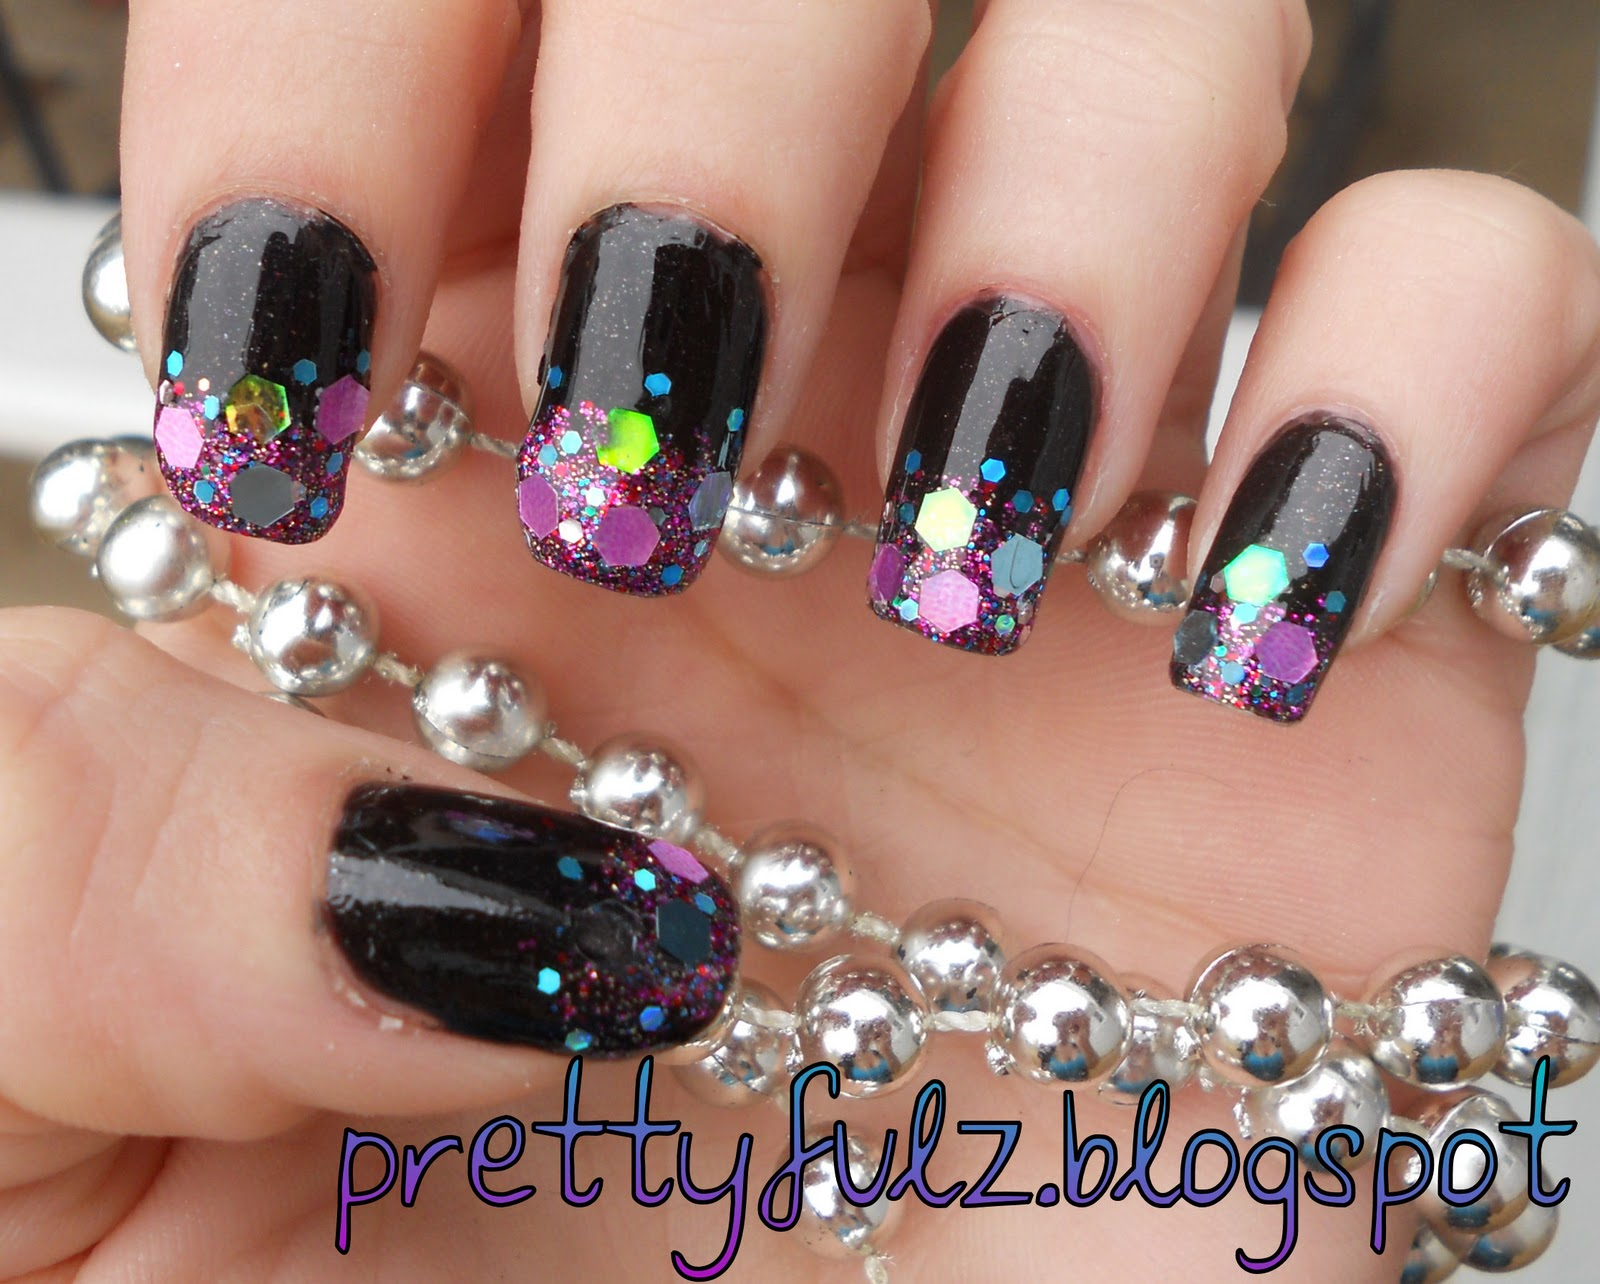 The Amusing Black nails glittery Digital Imagery